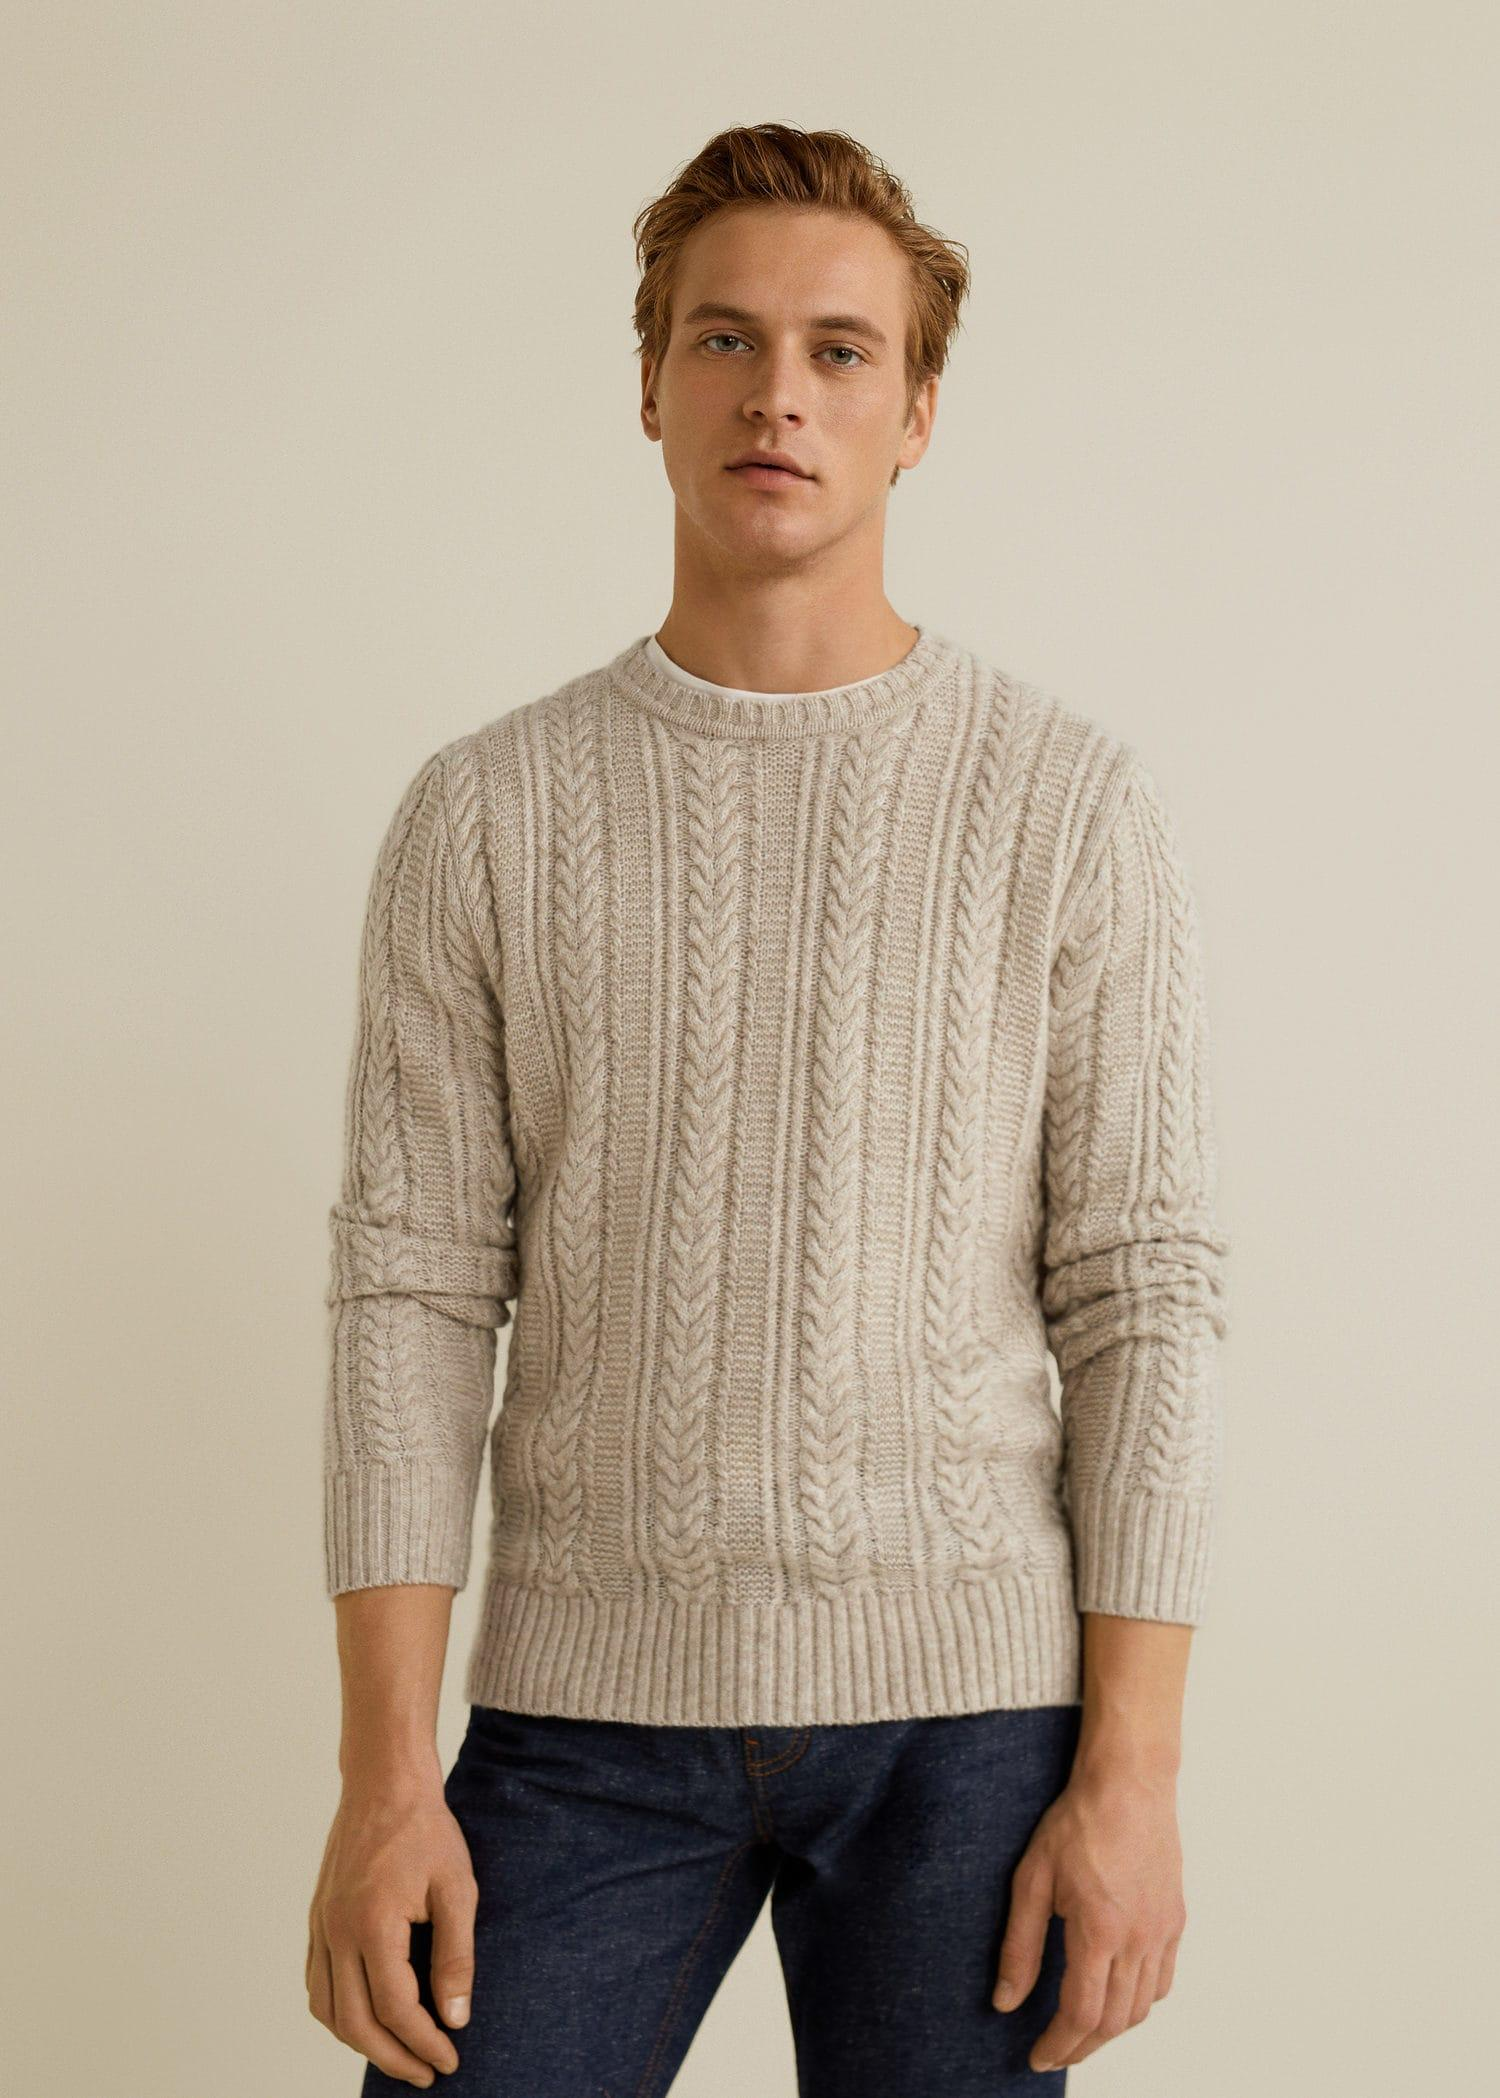 50% price discount coupon codes Mango Cotton Contrasting Knit Sweater in Beige (Natural) for Men ...